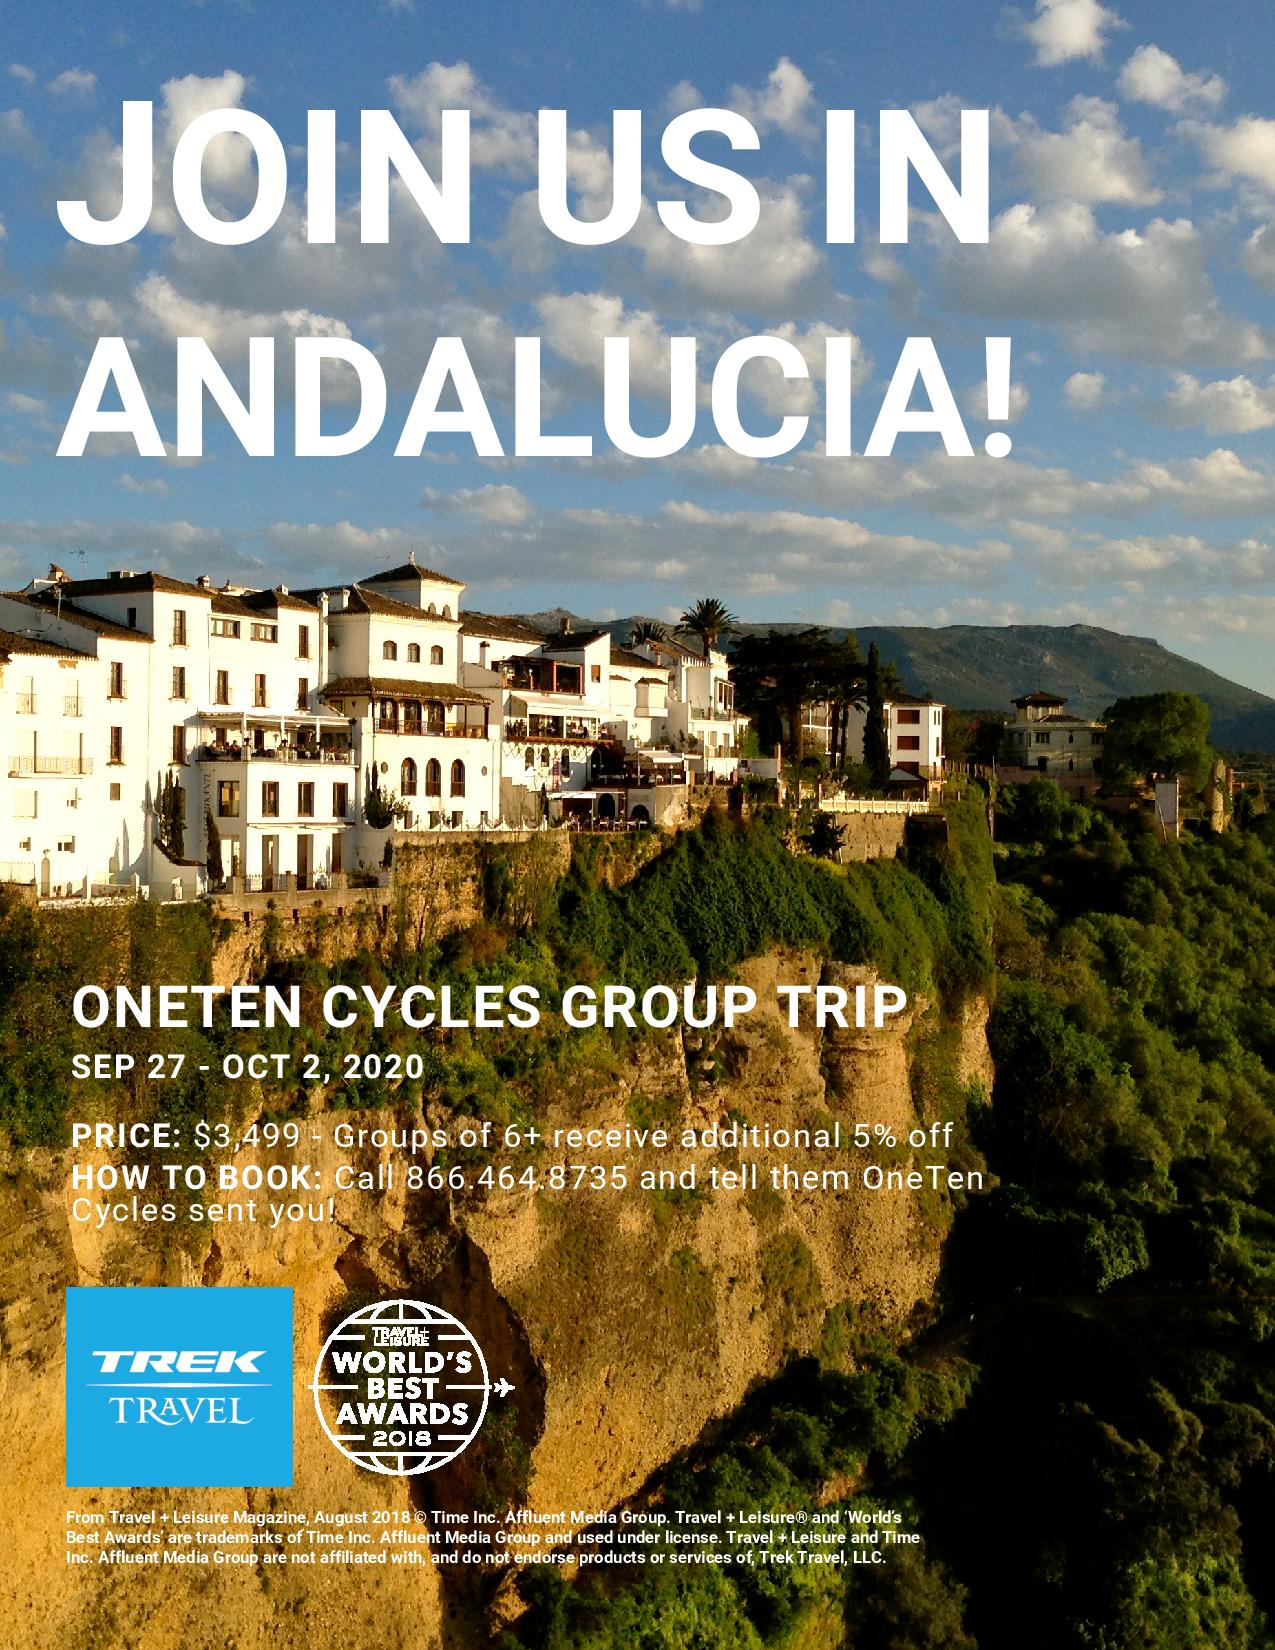 Trek Travel to Andalucia